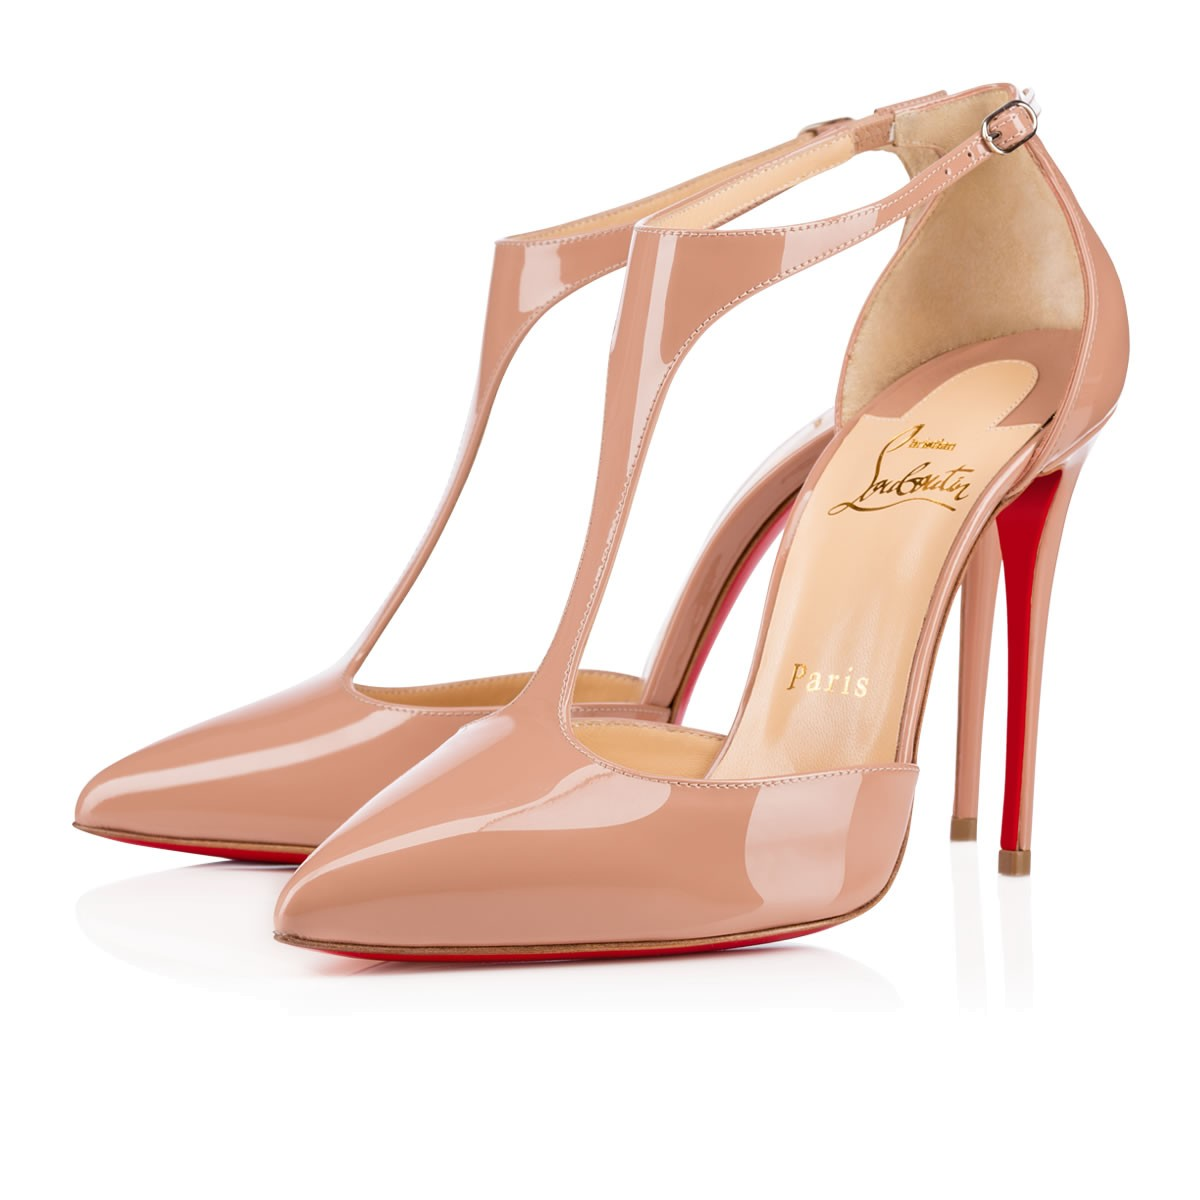 Christian Louboutin Nude Patent - Pigalle Leather 85mm